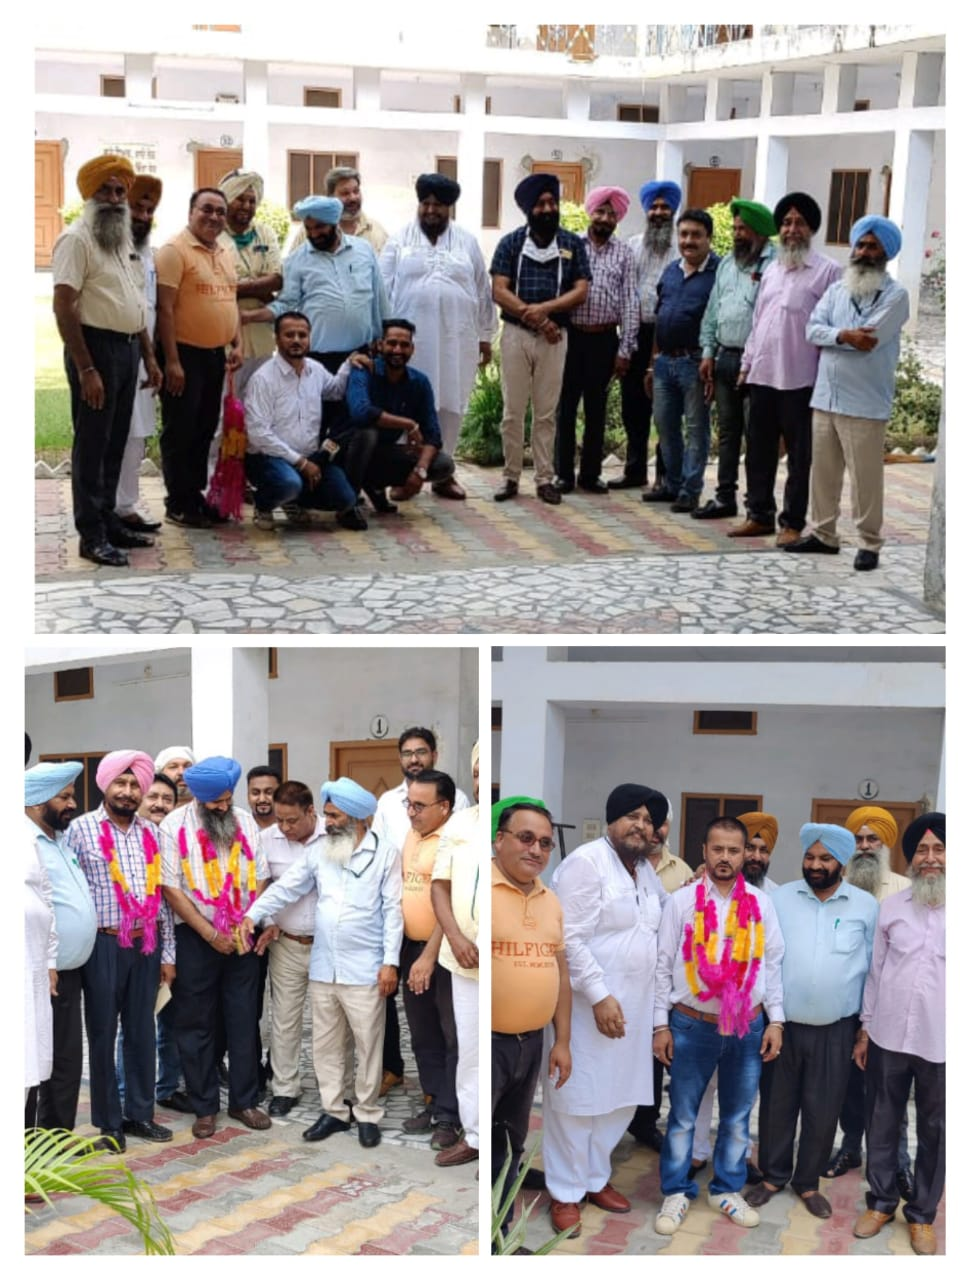 Medical Practitioners Association 295 will support all over Punjab in Kisan Andolan on September 25 .... Dr. Ramesh Kumar Bali, Dr. Mithu Mohammad